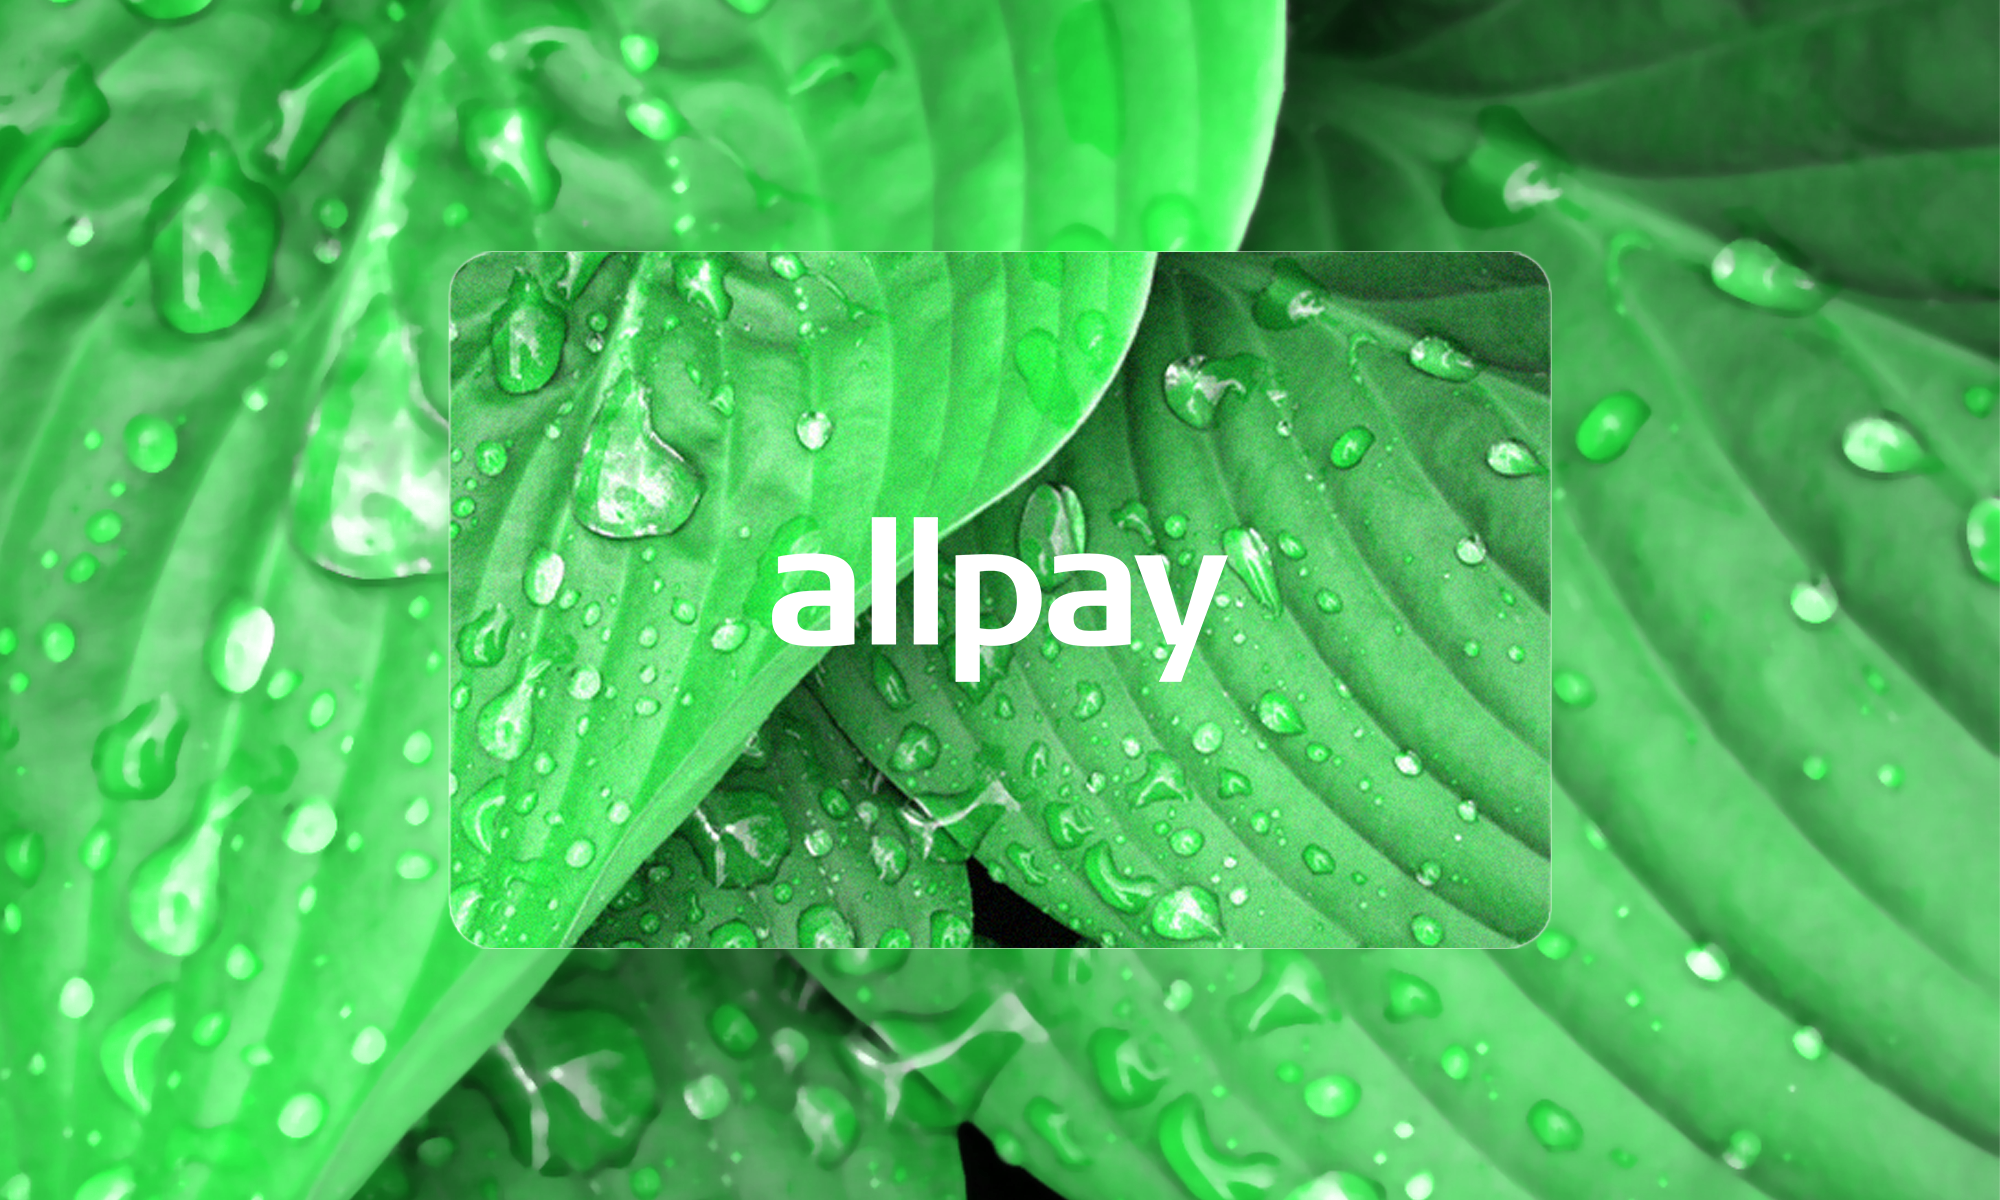 allpay plants the seed for the next generation